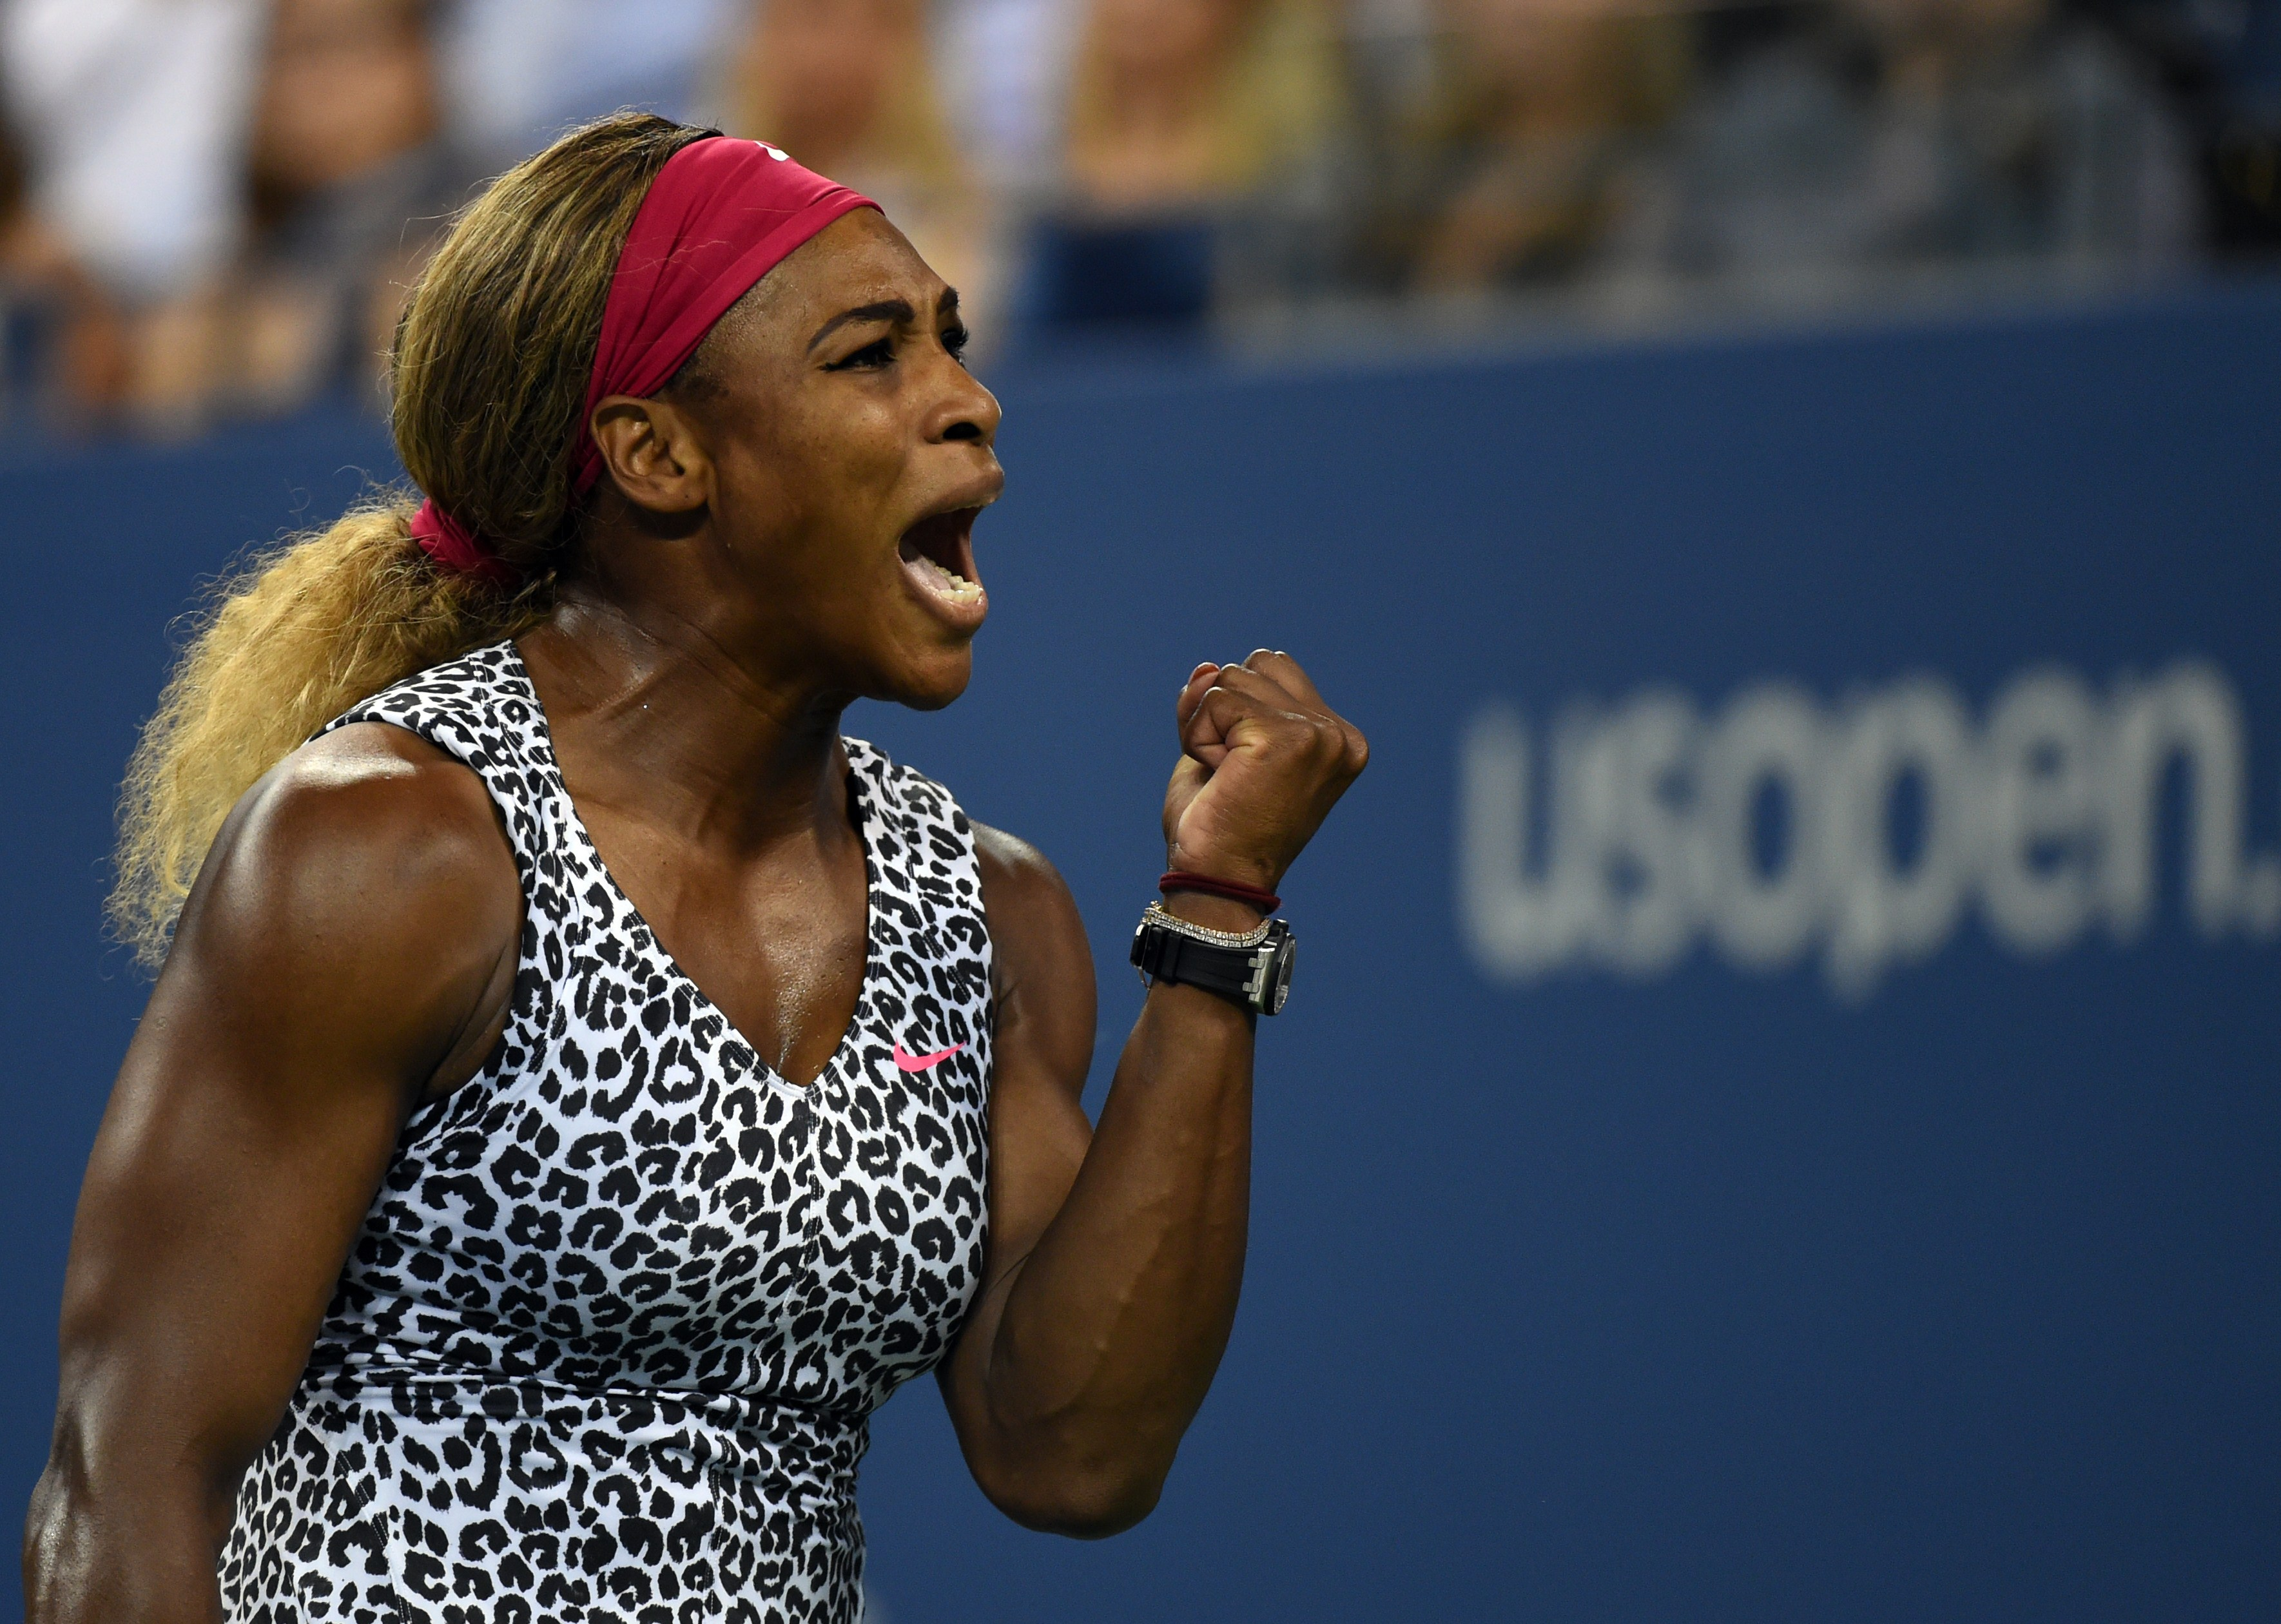 Serena Williams of the US celebrates the first set point against Flavia Pennetta of Italy during their US Open 2014 women's quarterfinals match at the USTA Billie Jean King National Center September 3, 2014  in New York.